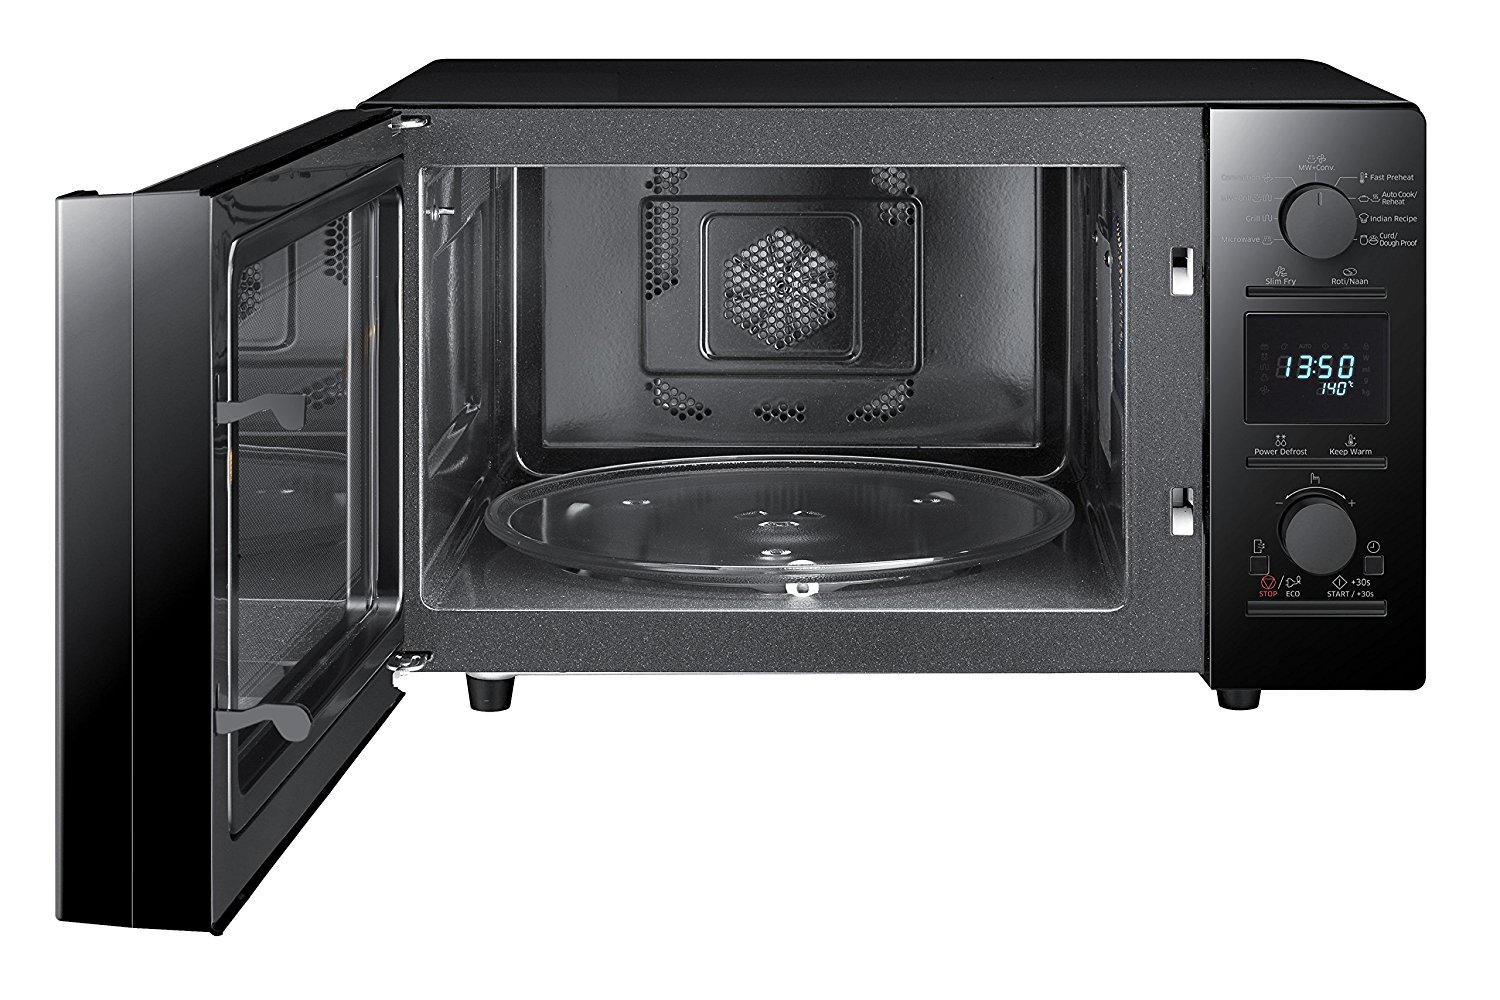 32 Liters Samsung Convection Microwave